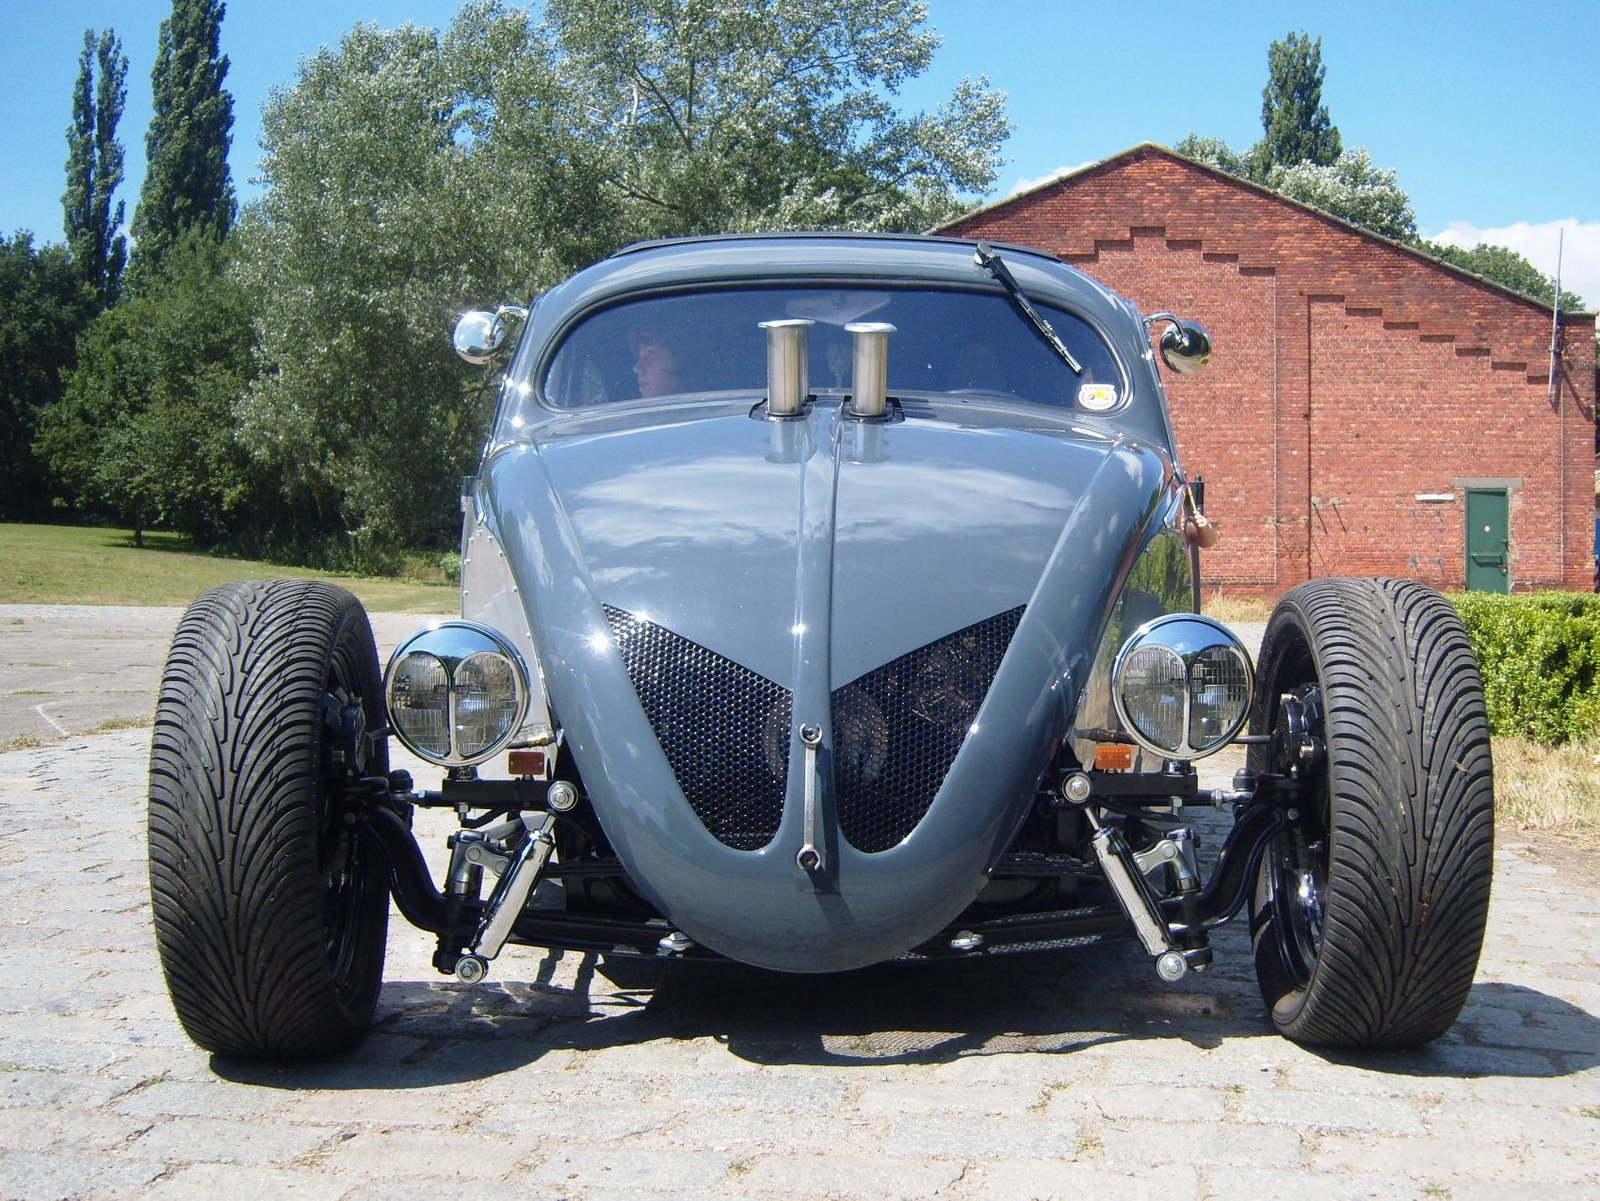 jurgens type34\'s: woaaw a\' 54 beetle hot rod V8